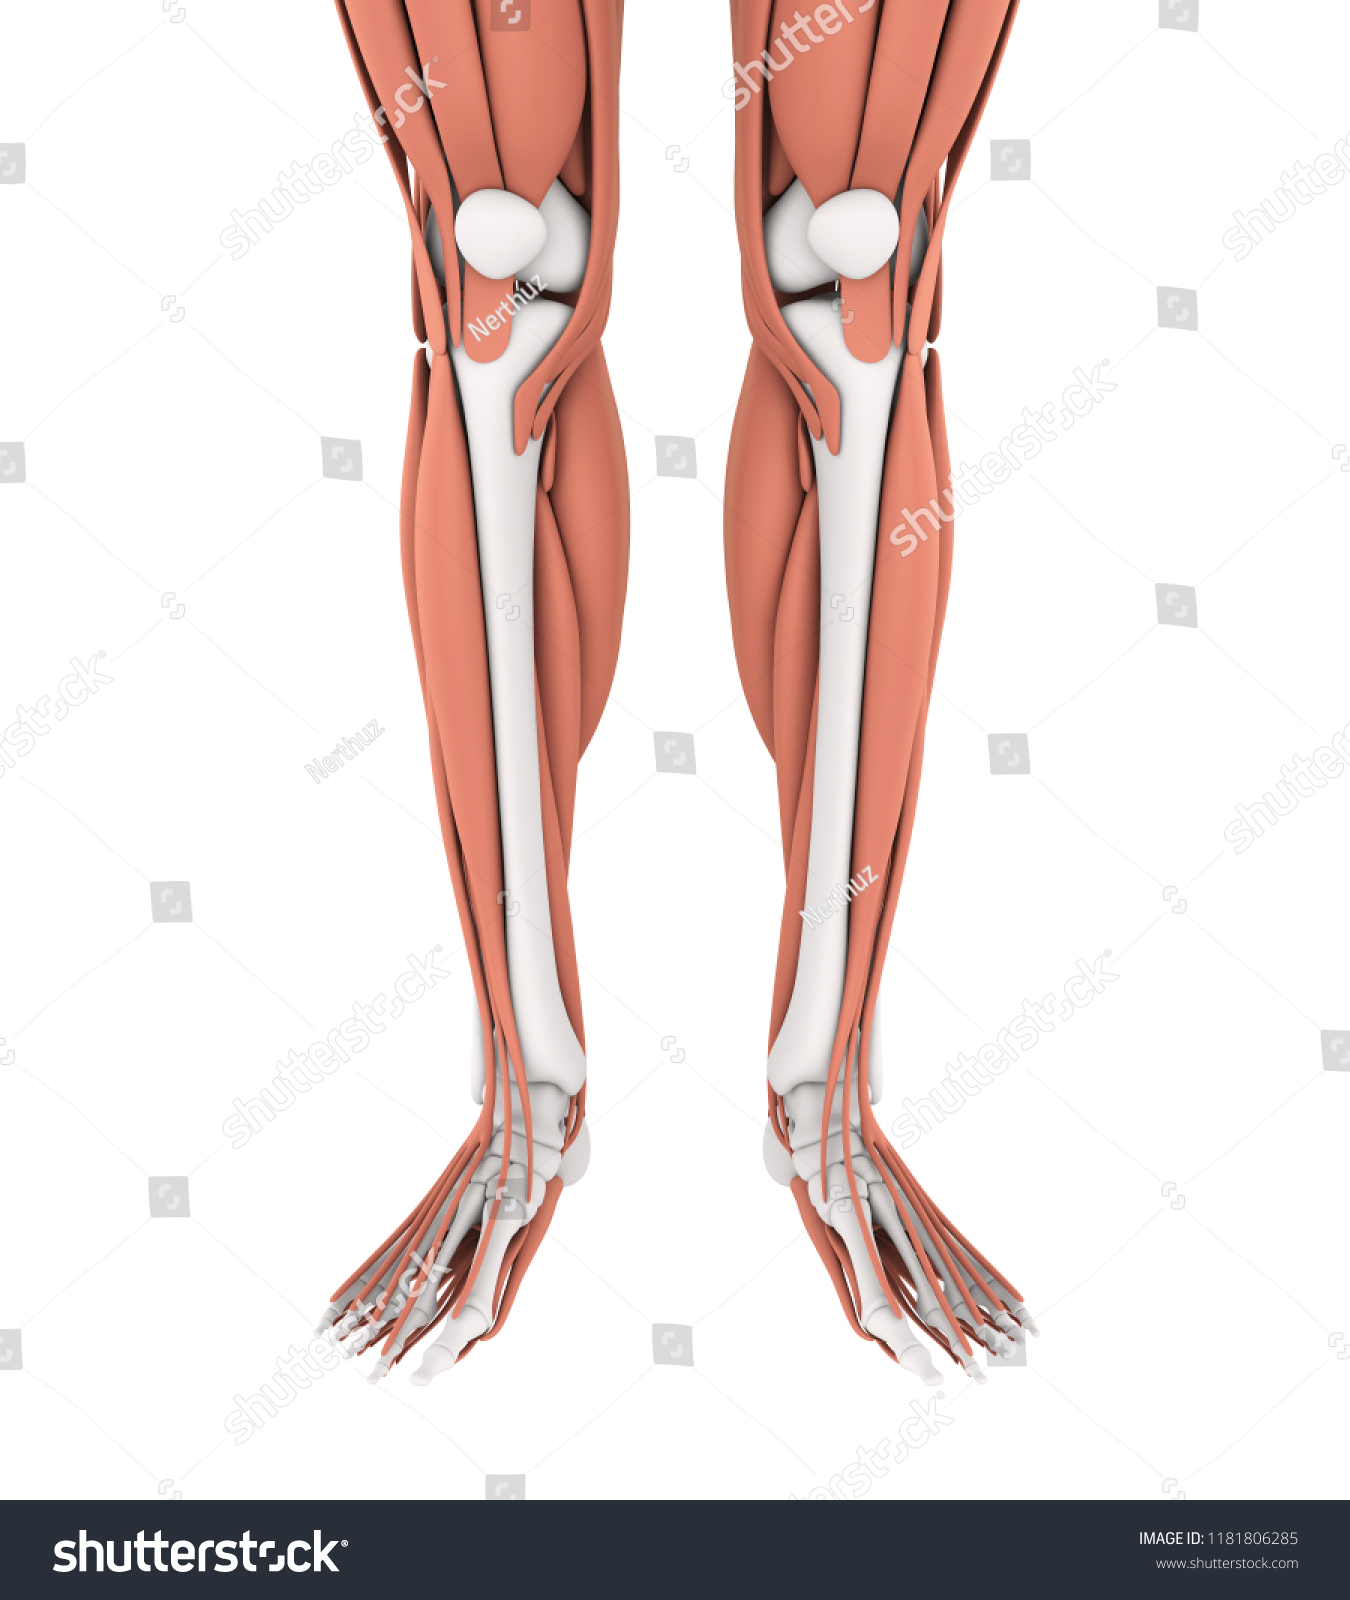 Royalty Free Stock Illustration Of Human Legs Muscles Anatomy 3 D